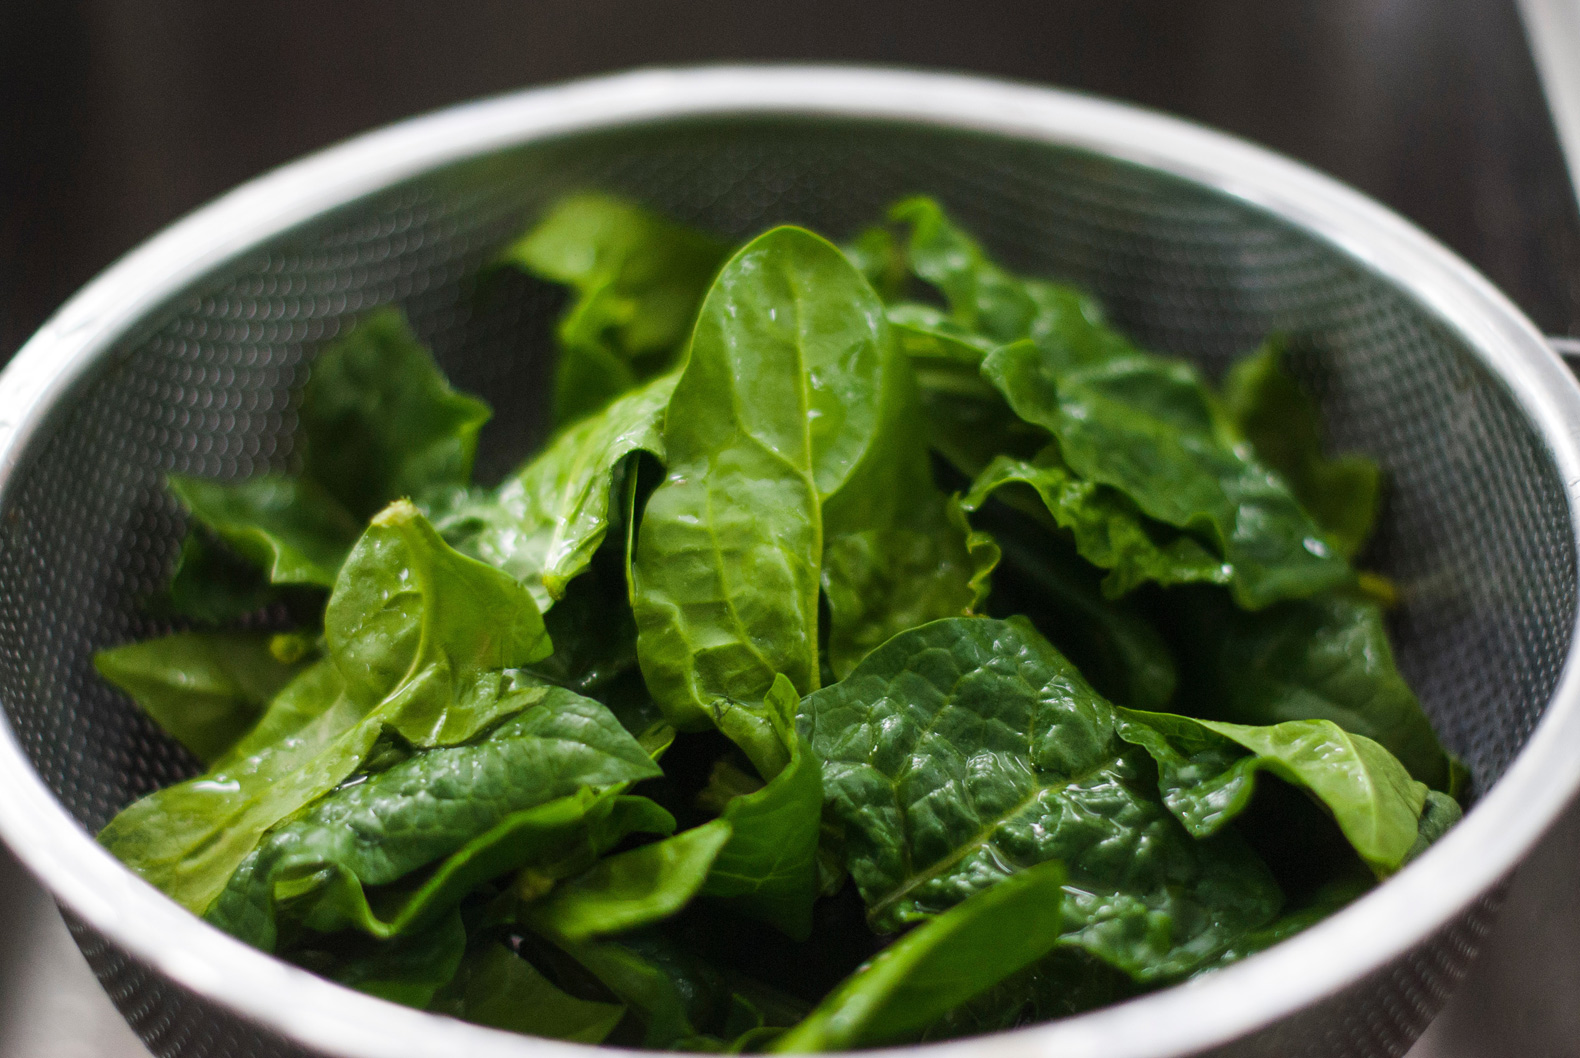 Fight food waste with these 11 ways to use leftover greens before they spoil